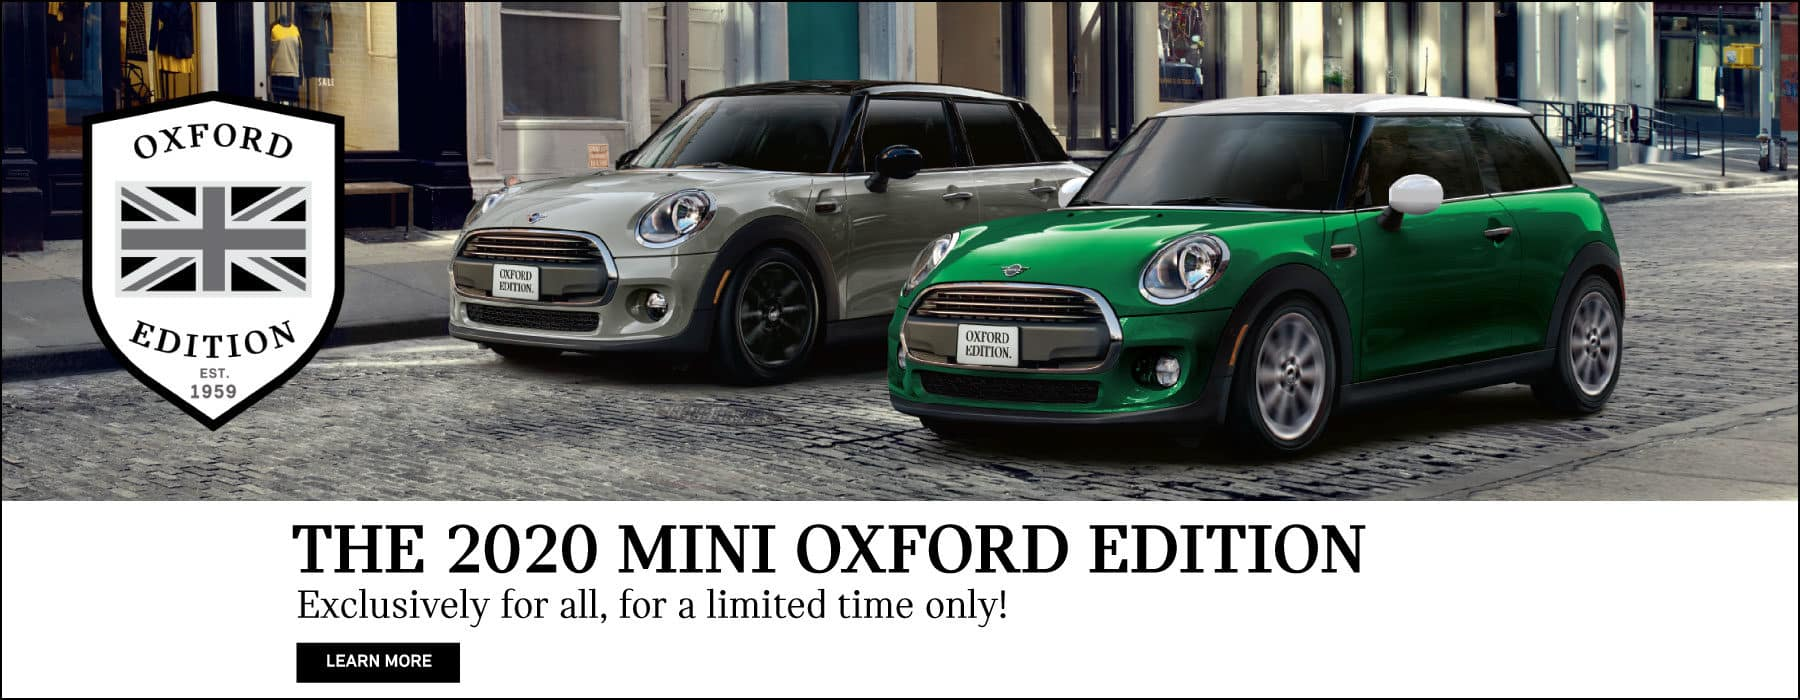 2020 MINI OXFORD EDITION. Exclusively for all, for a limited time only! Click to learn more.